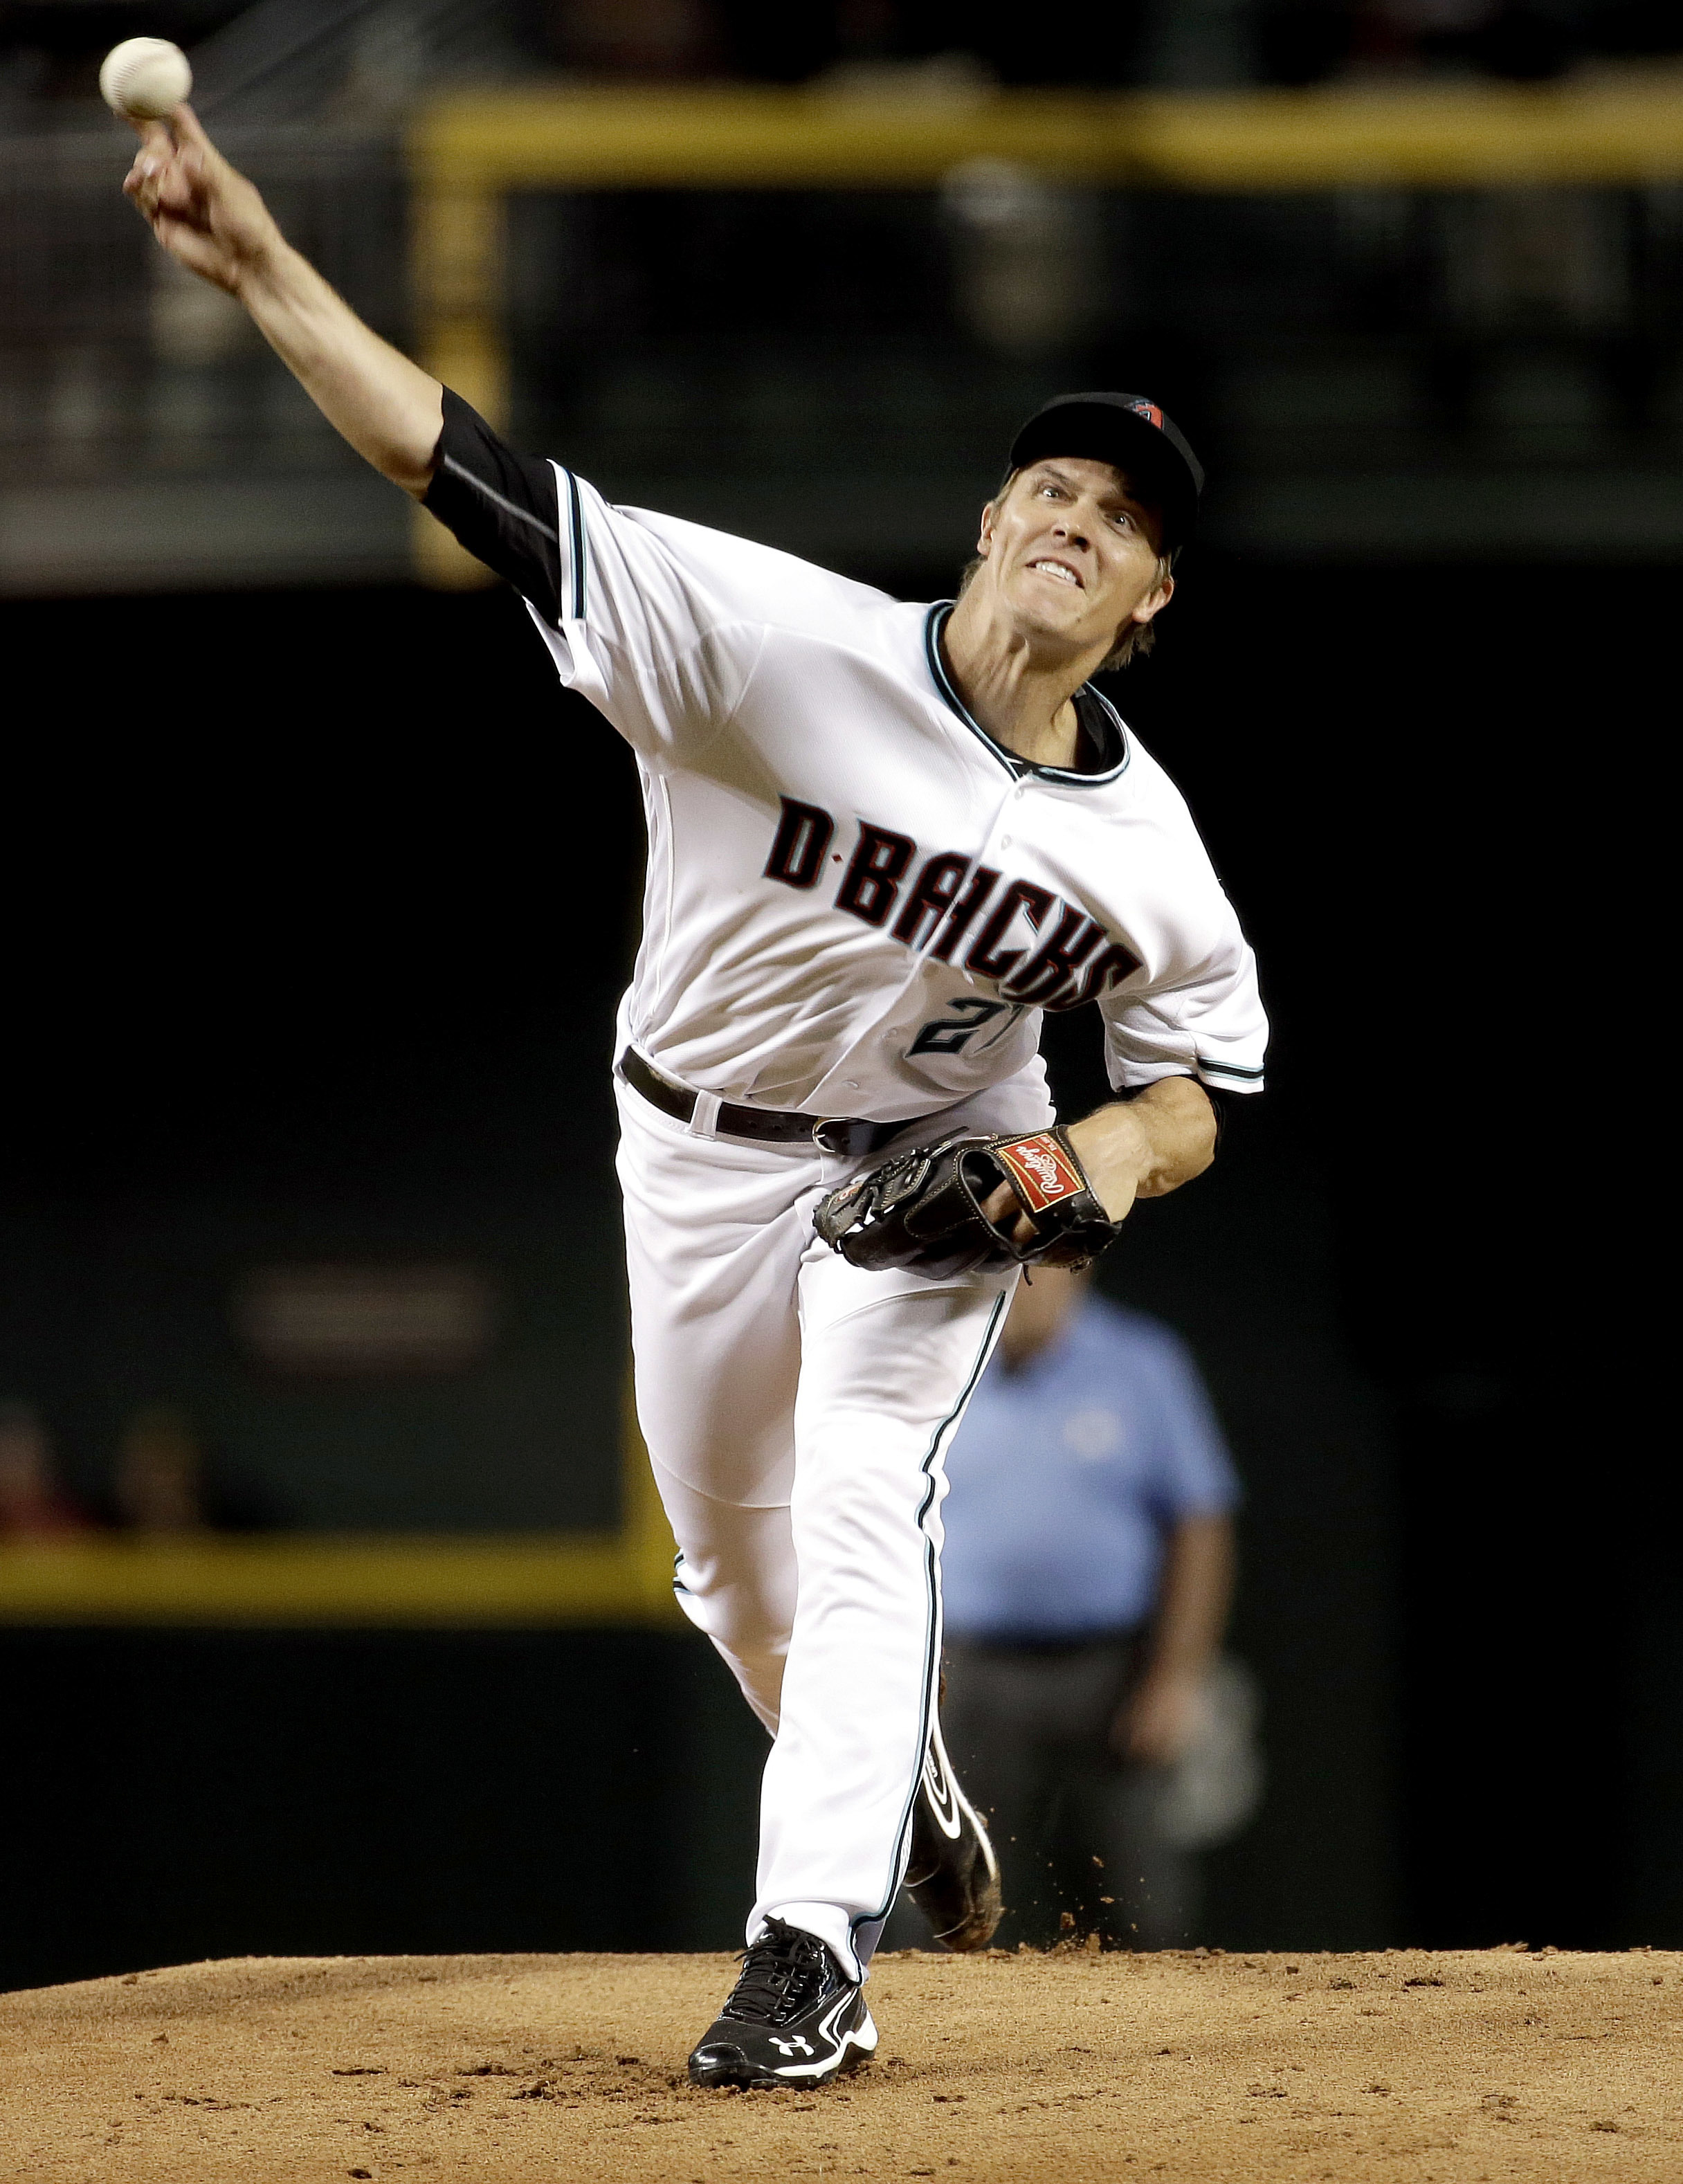 Arizona Diamondbacks pitcher Zack Greinke throws against the Philadelphia Phillies during the first inning of a baseball game, Tuesday, June 28, 2016, in Phoenix. (AP Photo/Matt York)